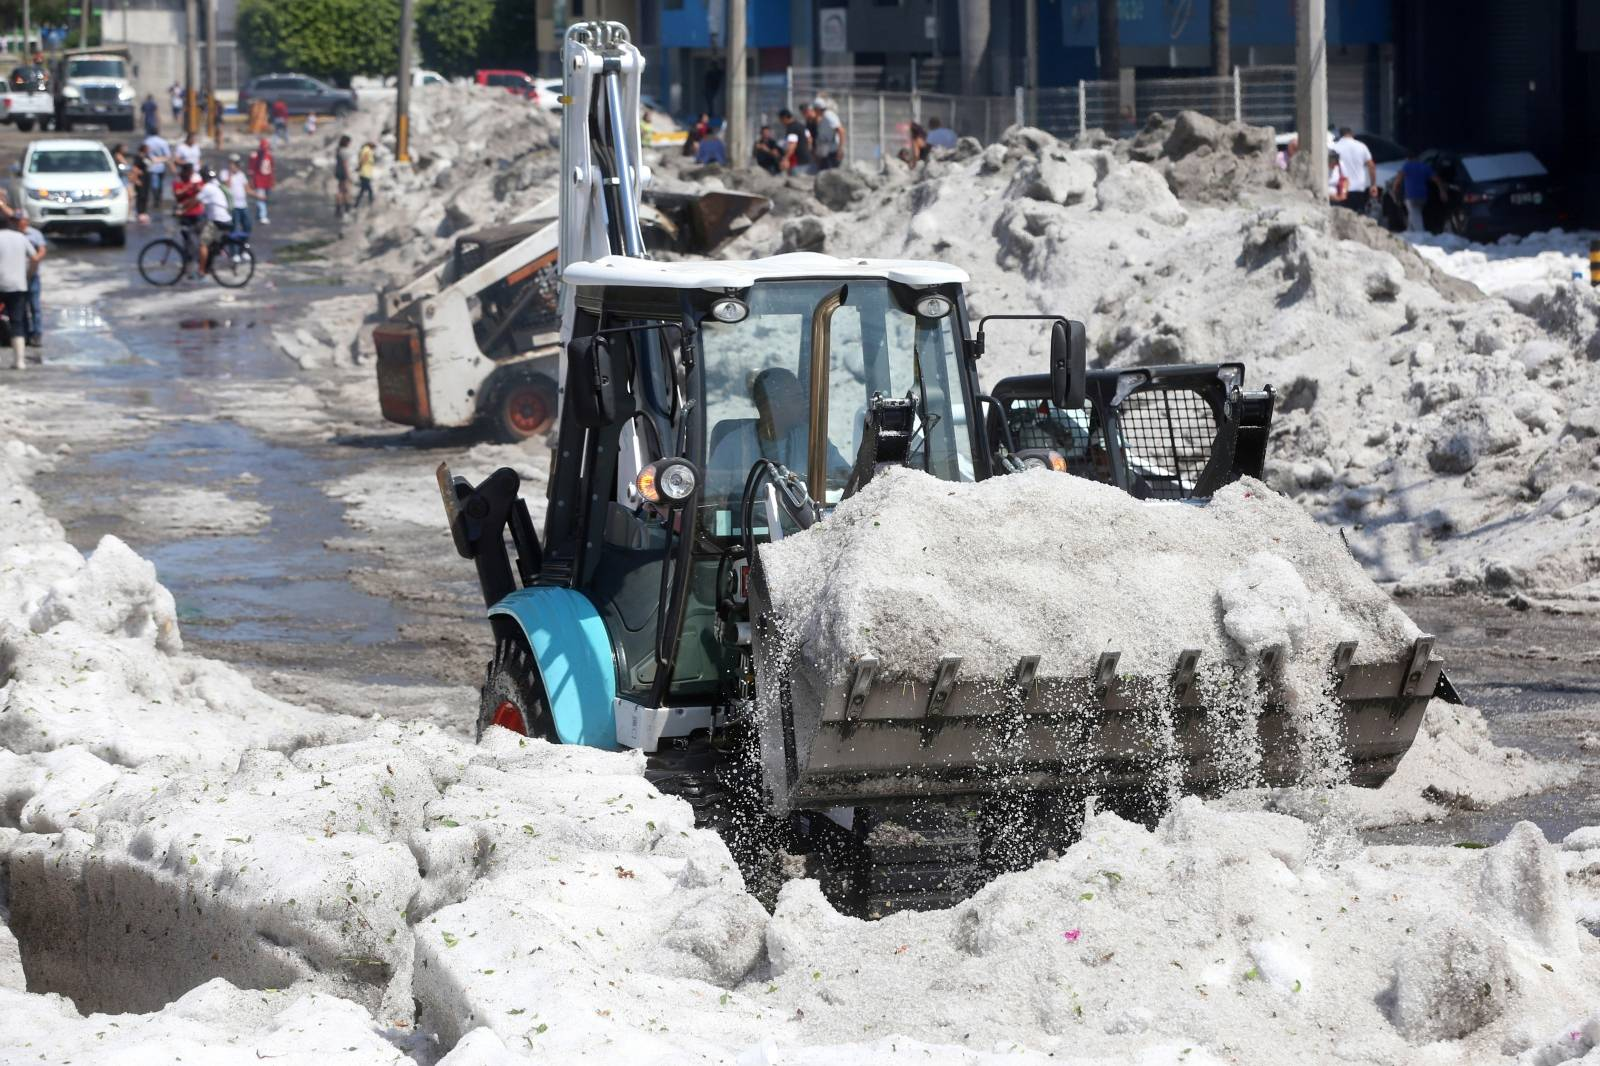 A truck carries ice as it cleans the street after a heavy storm of rain and hail which affected some areas of the city in Guadalajara,